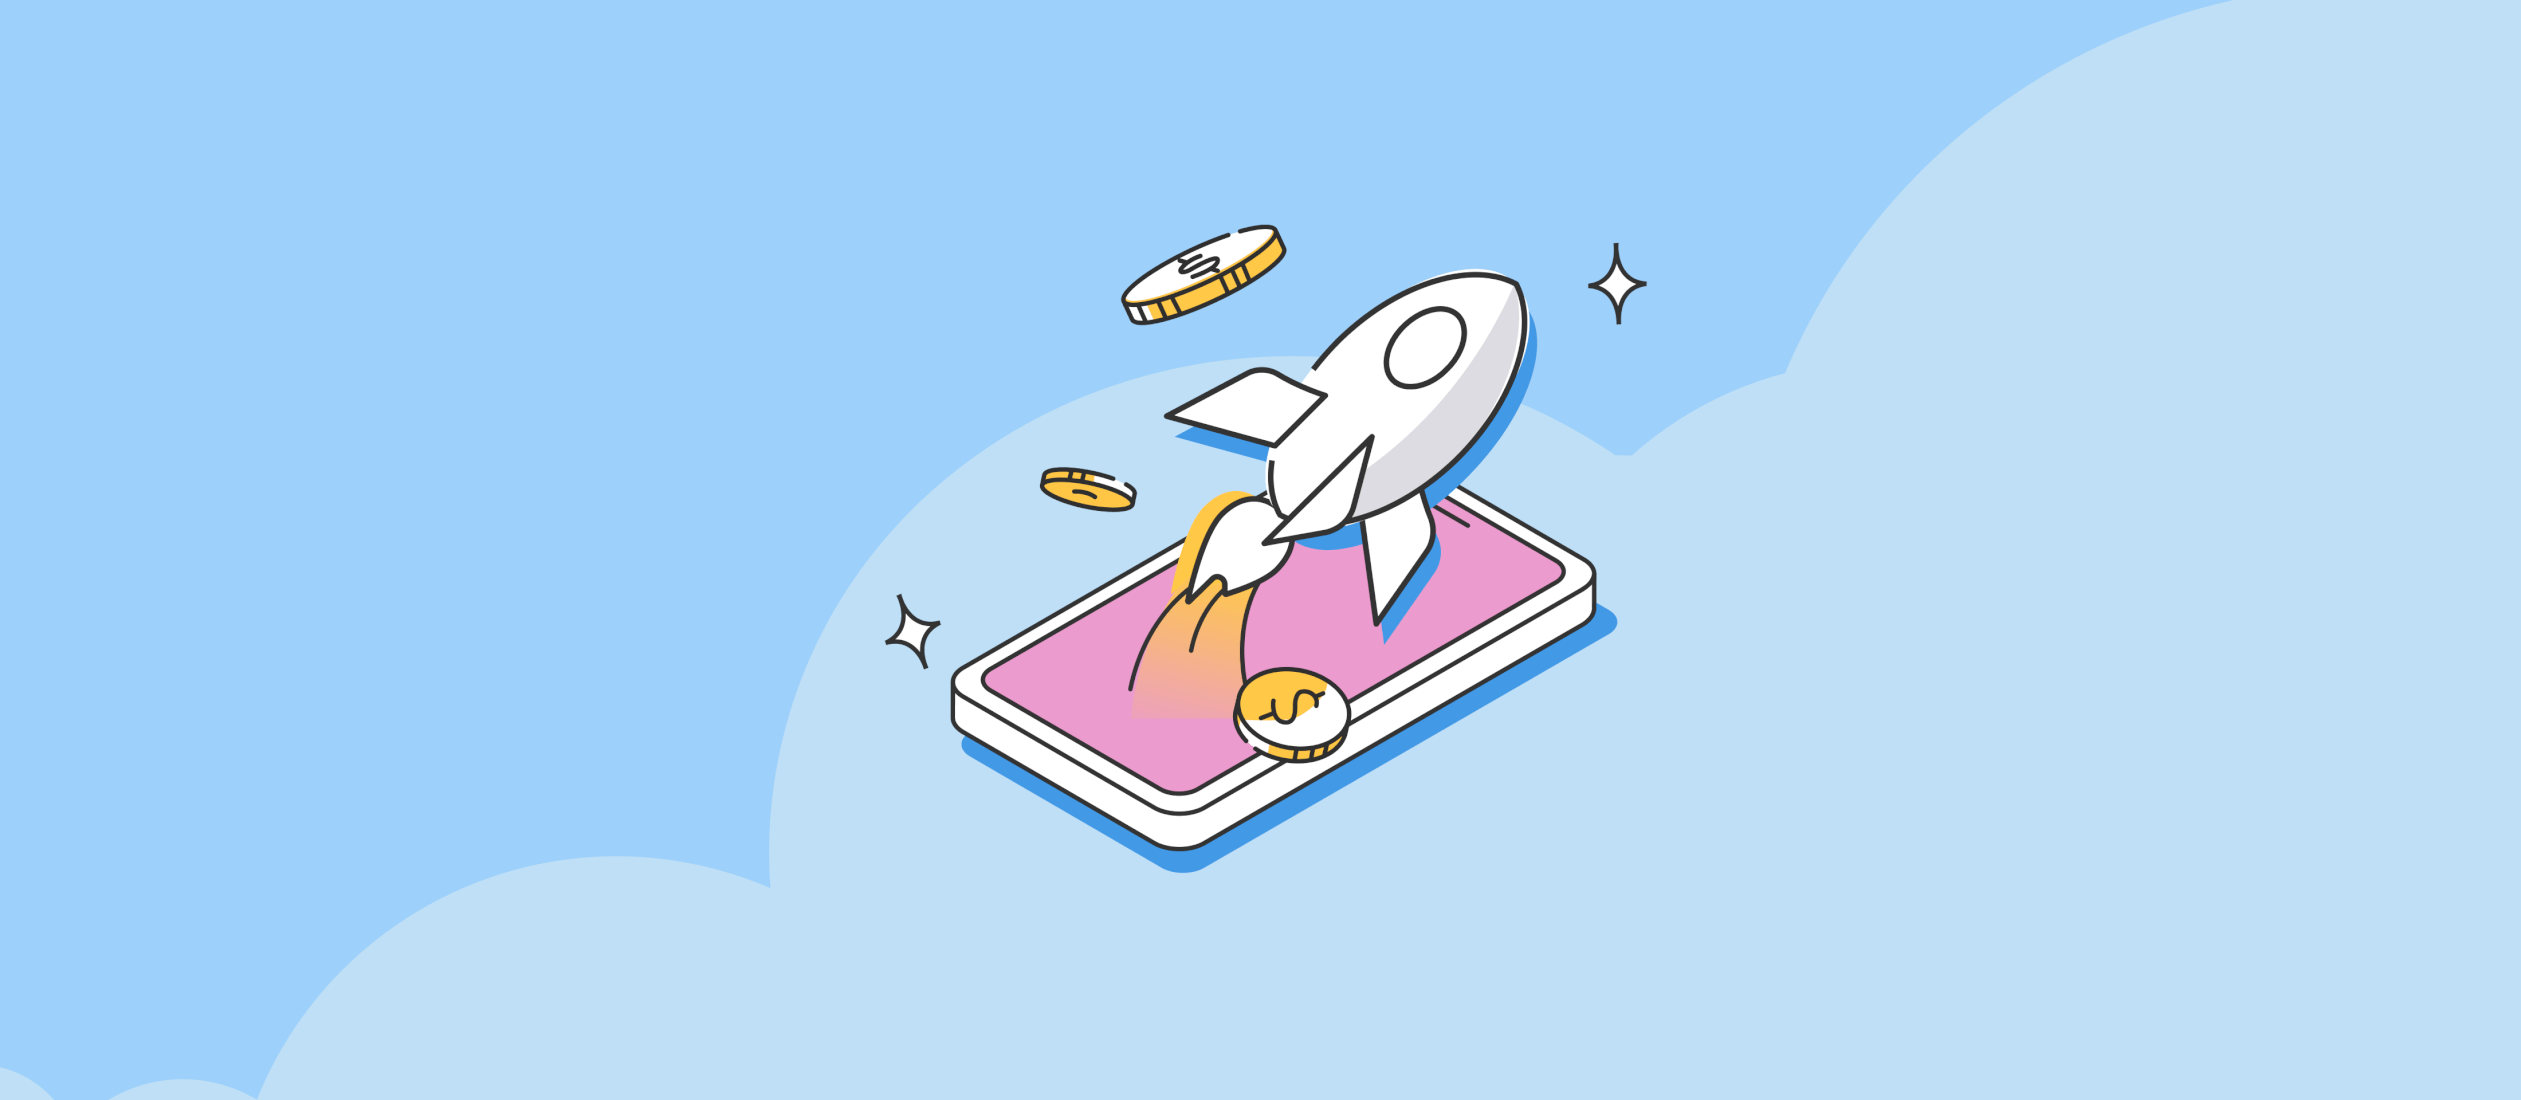 illustration representing SpotMe Boosts, rocket ship coming out of phone